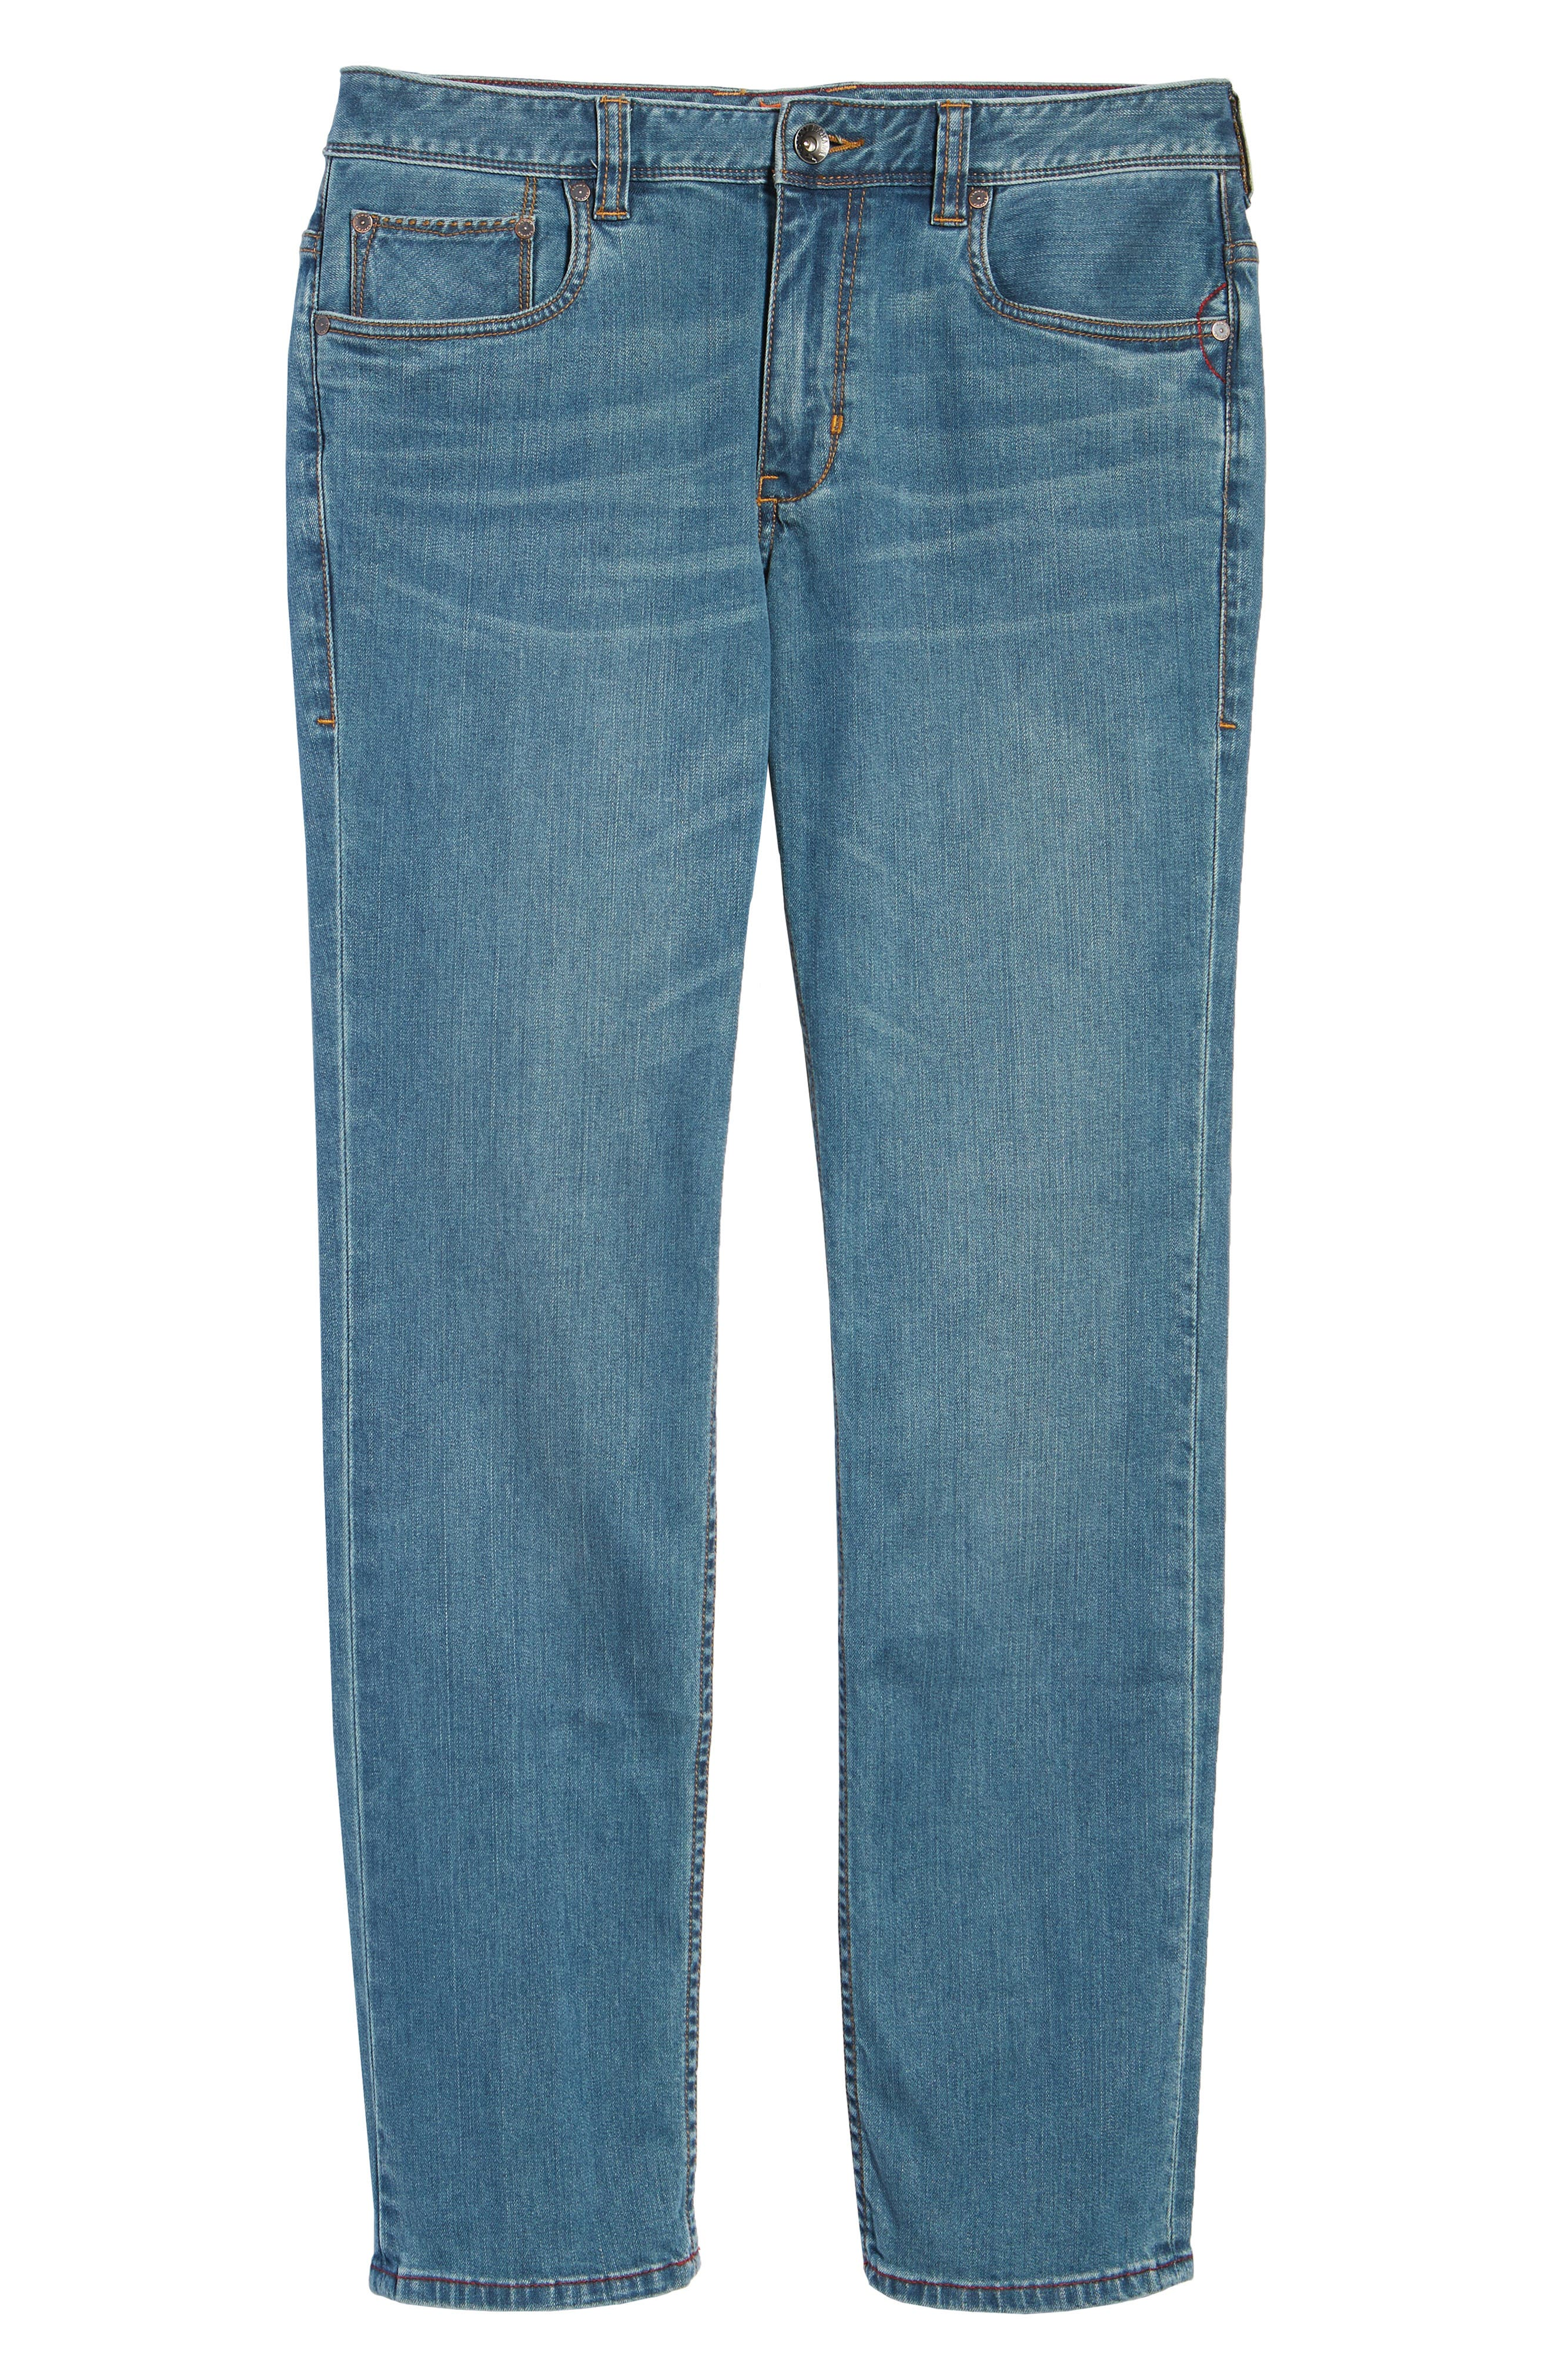 Vintage Fit Jeans,                             Alternate thumbnail 6, color,                             VINTAGE WASH